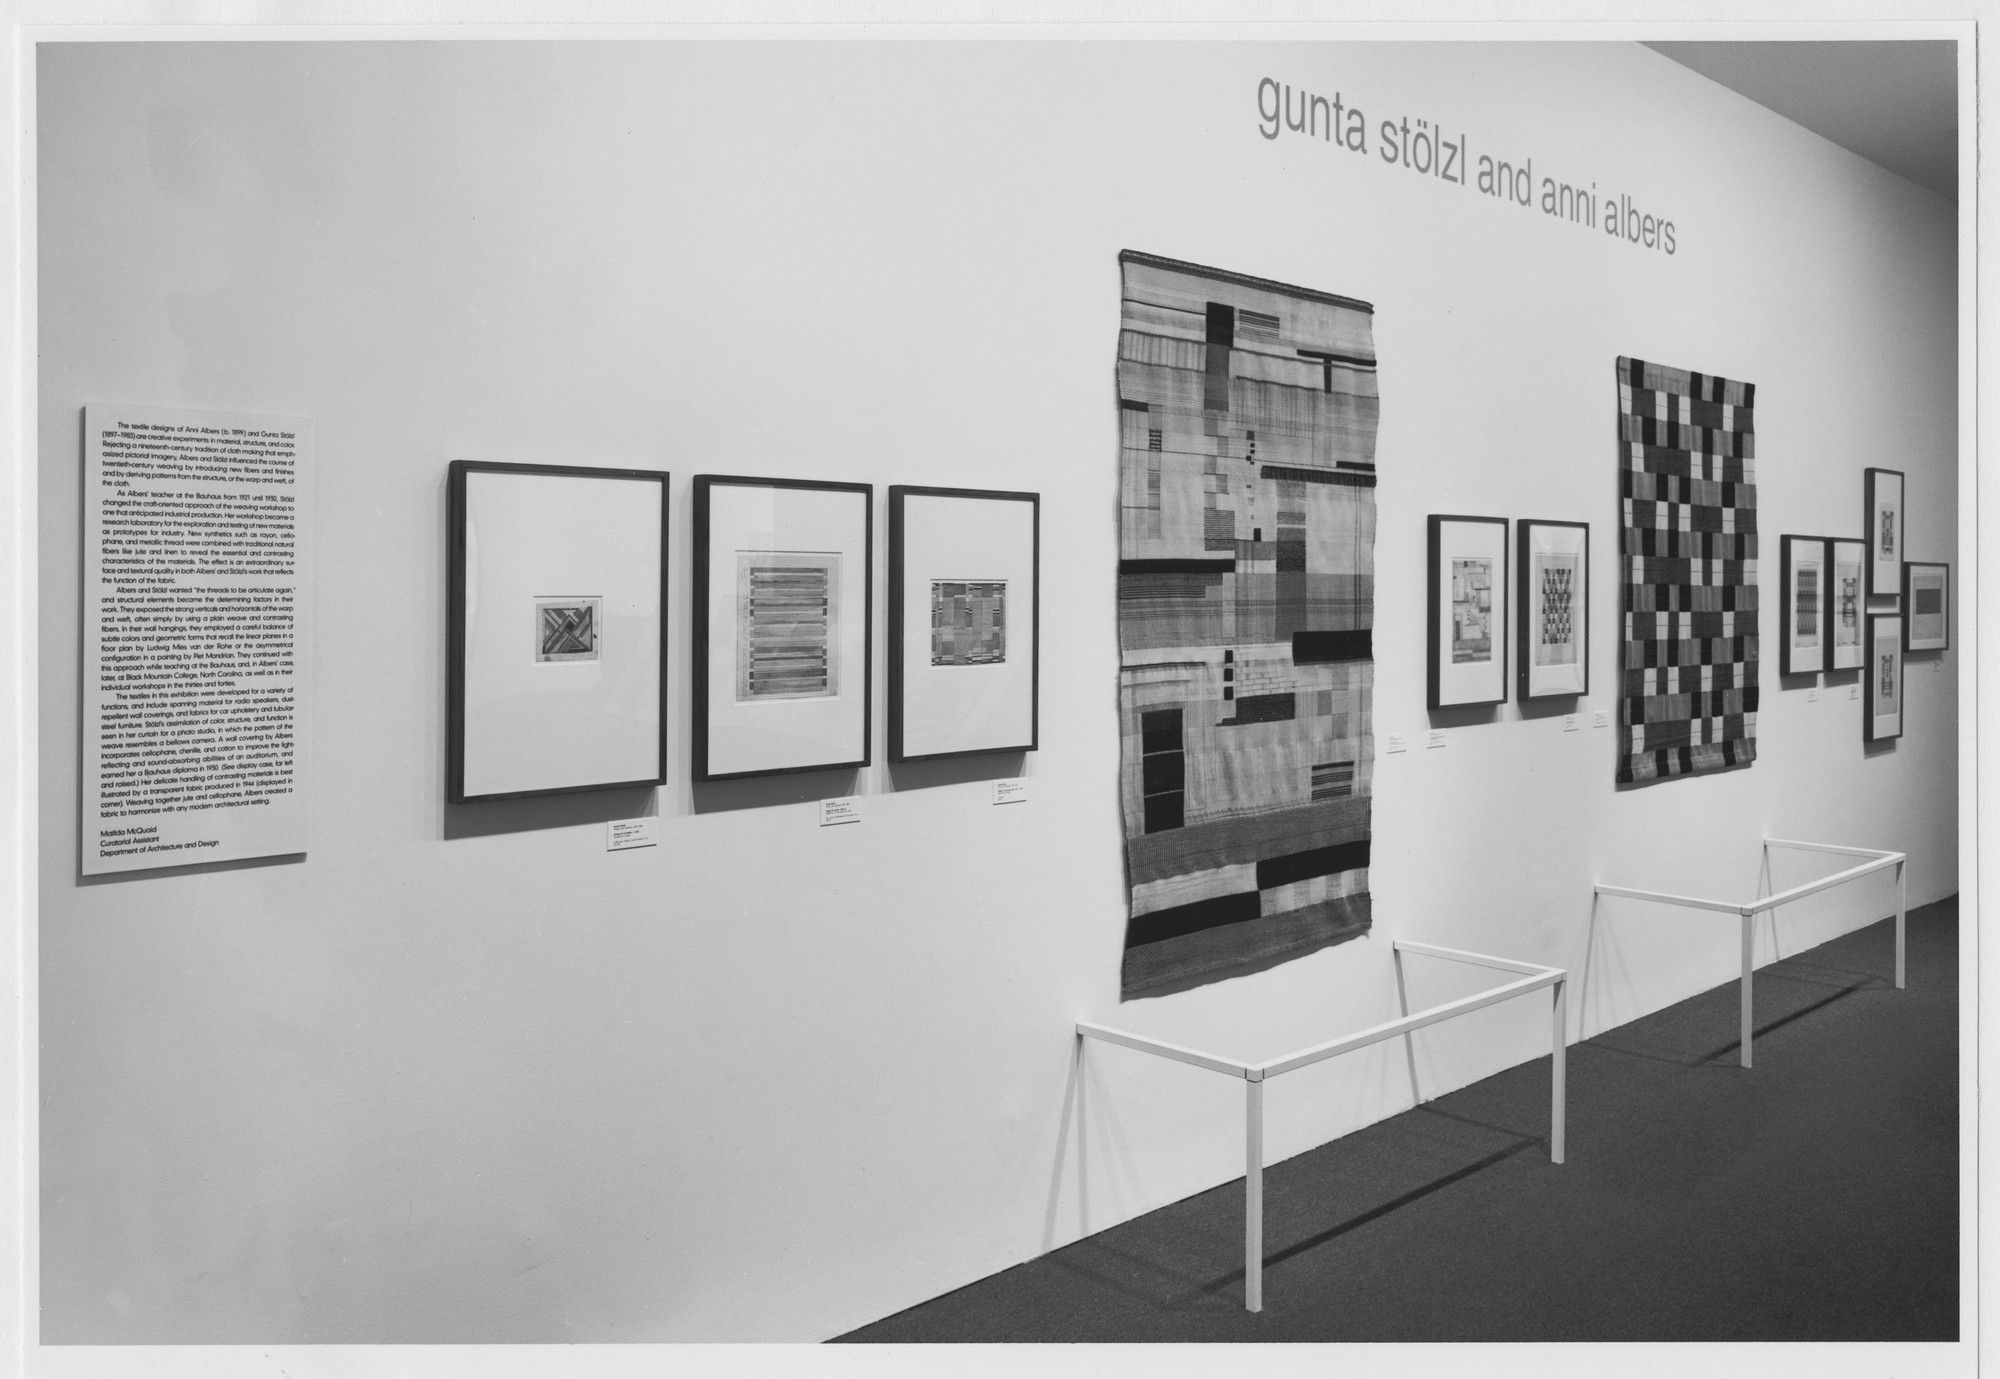 "Installation view of the exhibition, ""Gunta Stölzl and Anni Albers"" February 15, 1990–July 8, 1990. Photographic Archive. The Museum of Modern Art Archives, New York. IN1542a.1. Photograph by Mali Olatunji."